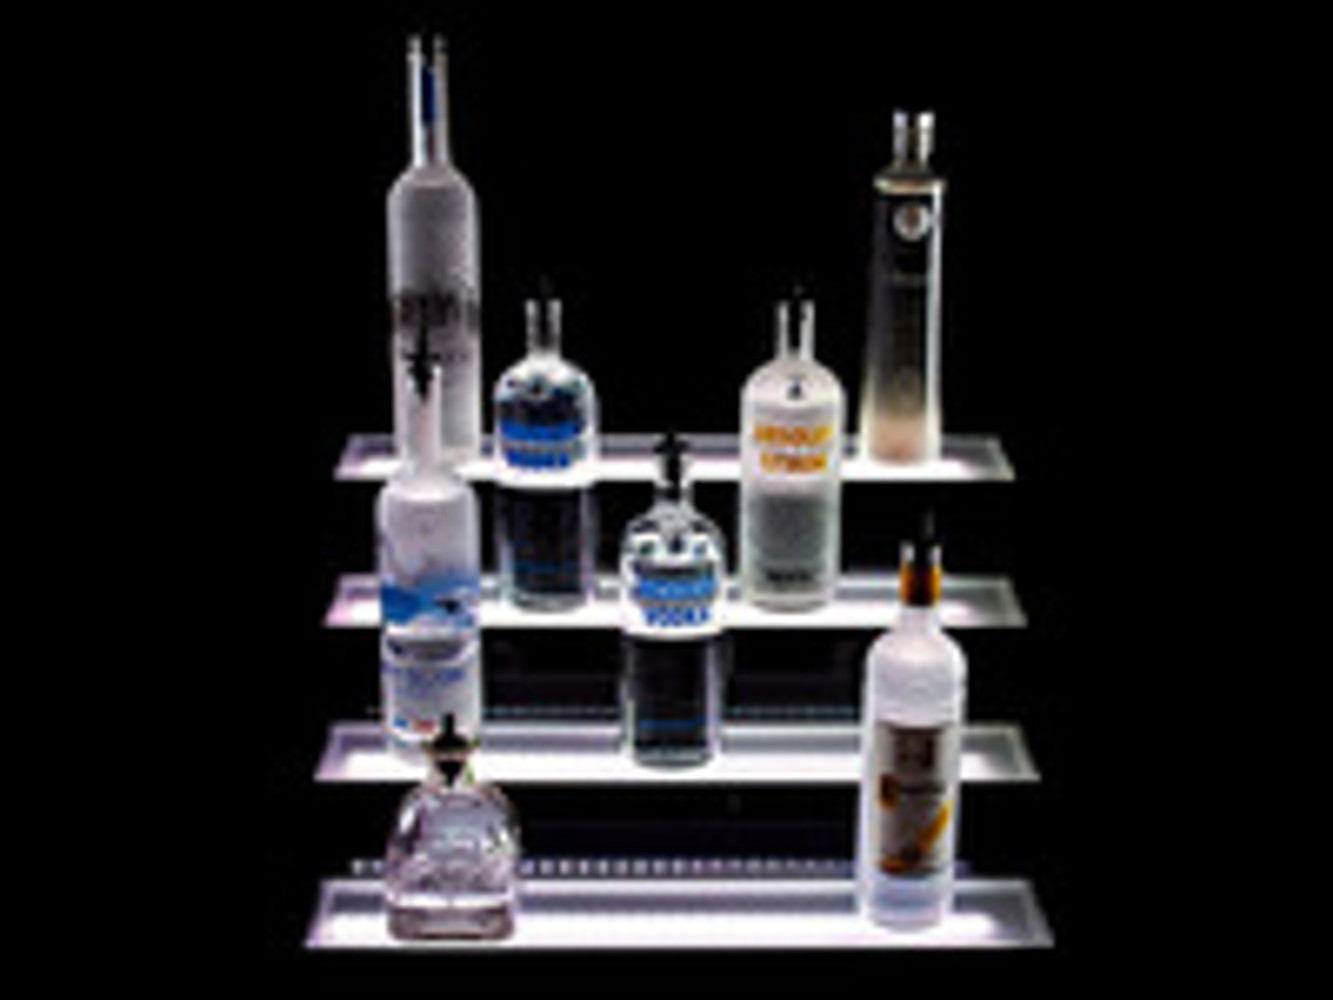 Update Your Old Bar with Tiered LED Lighting Displays